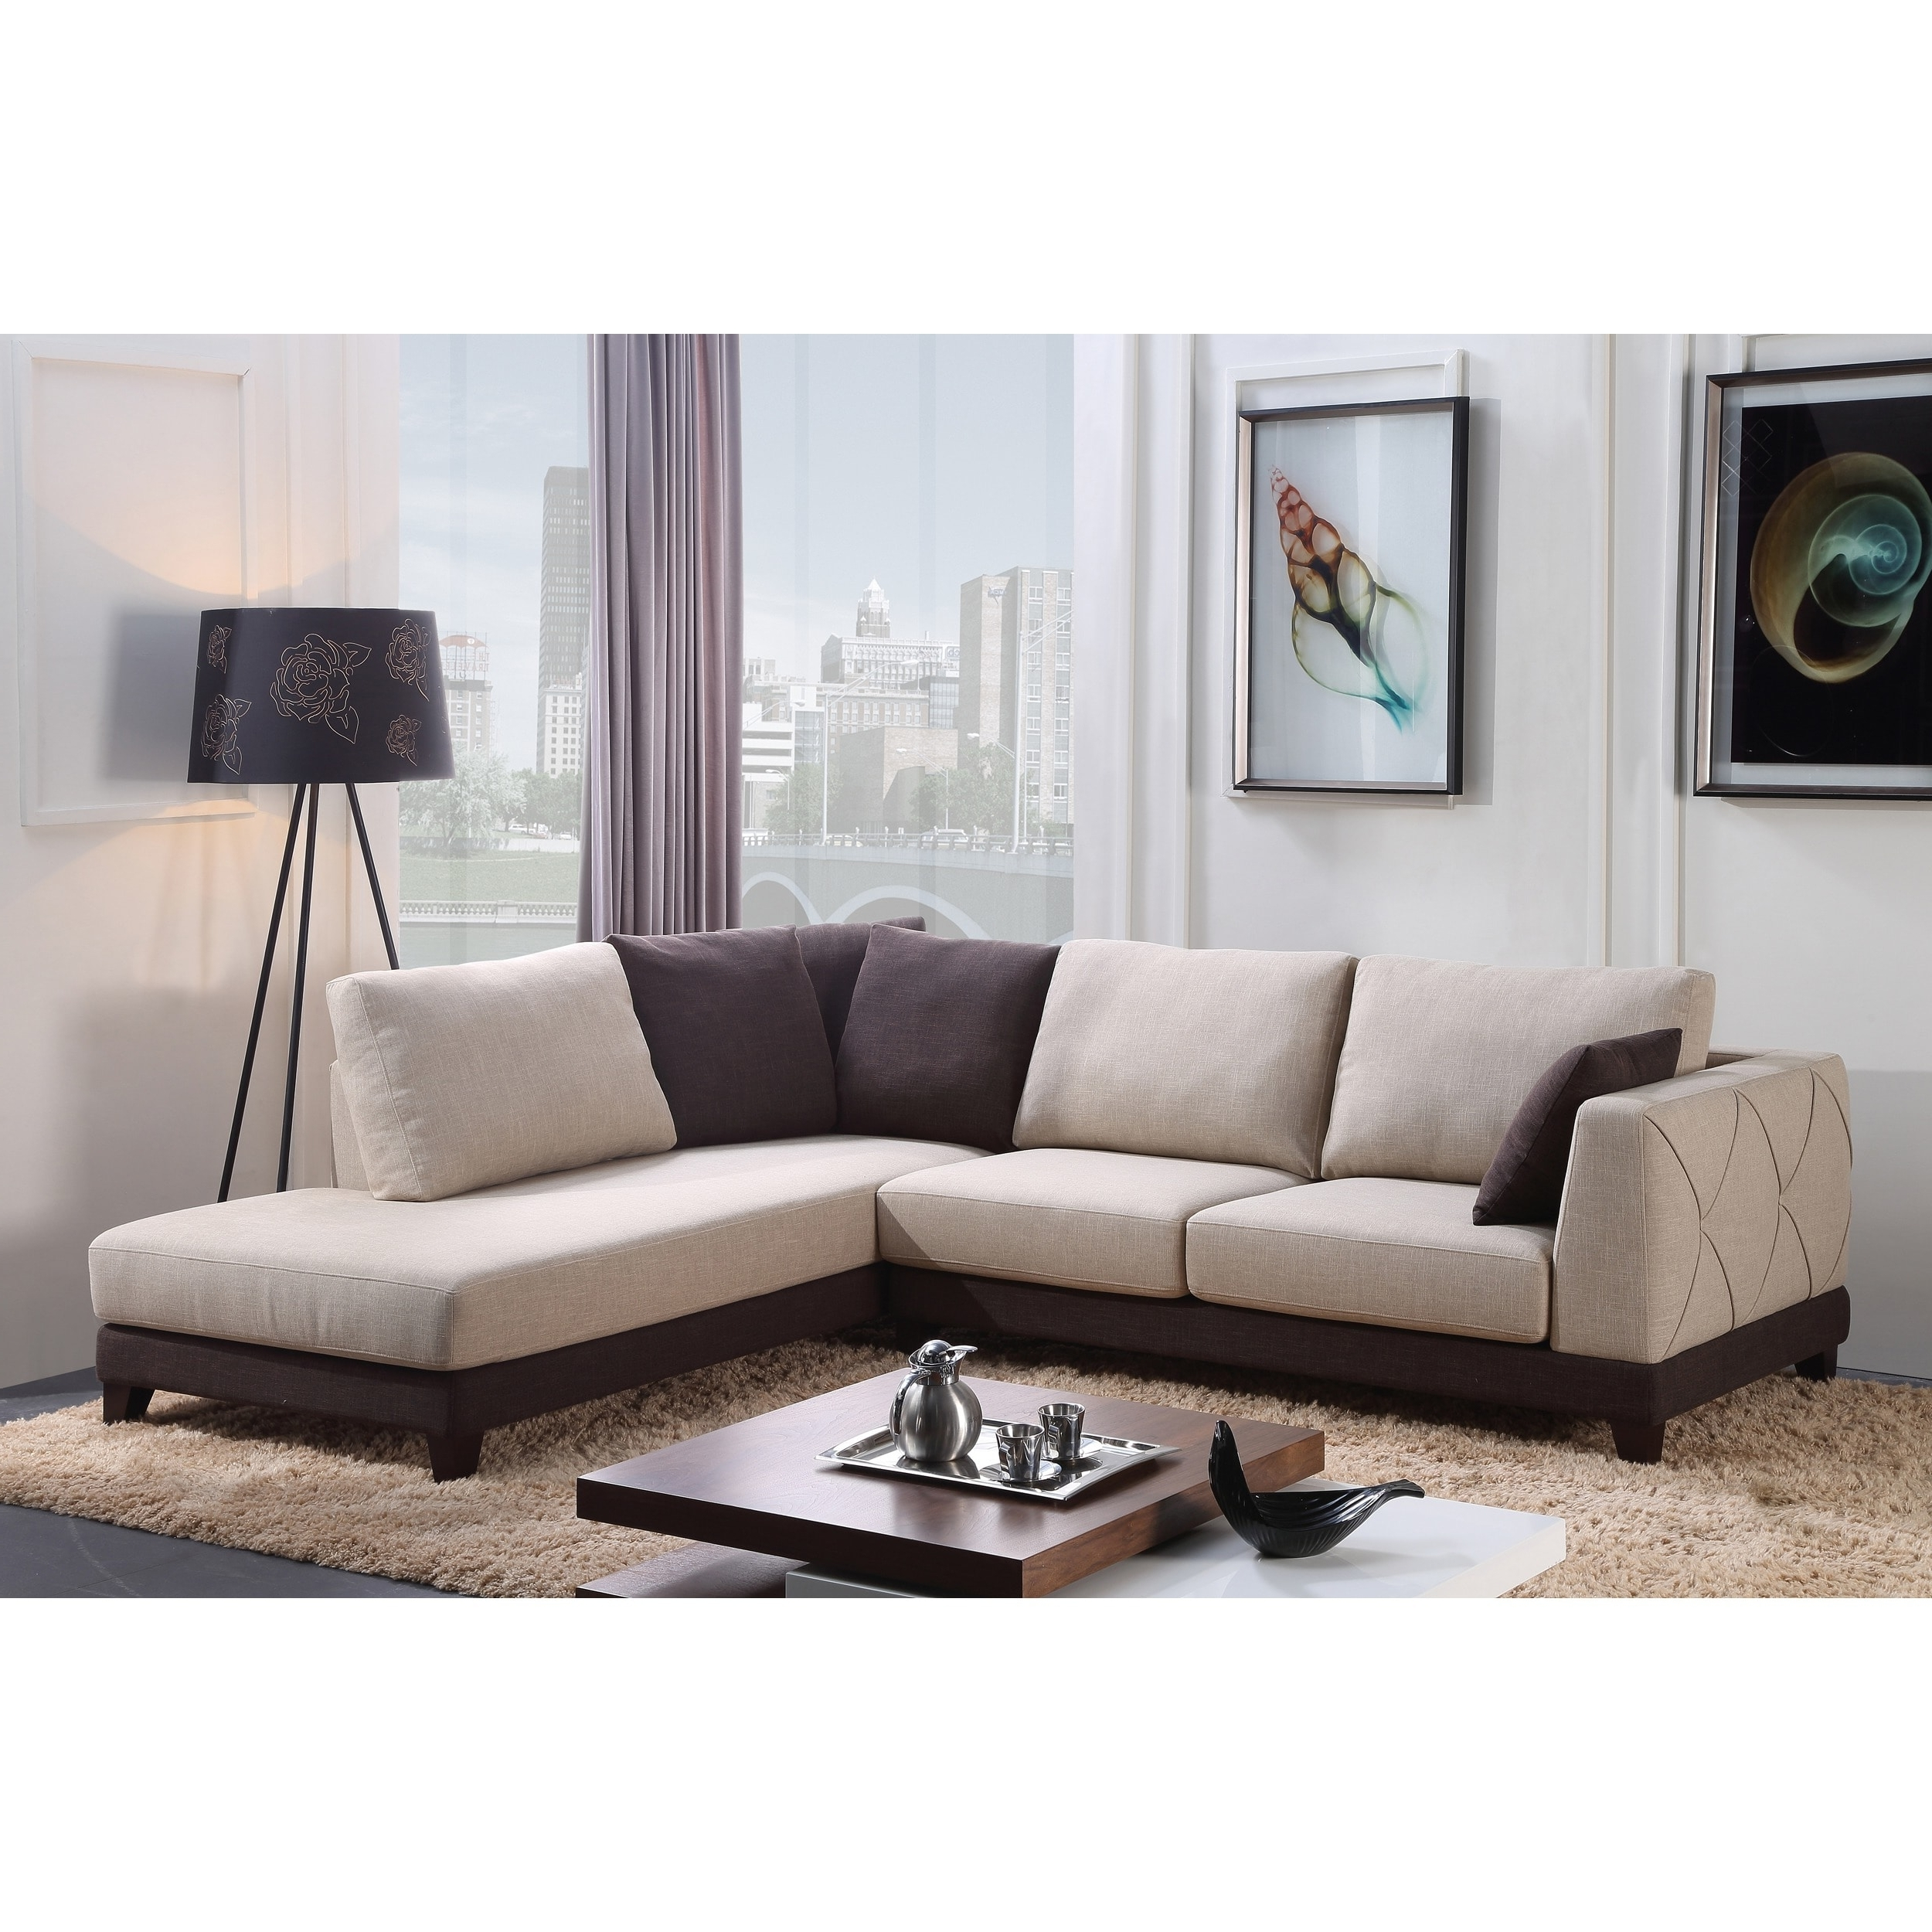 Abbyson 'verona' Fabric Sectional Sofa – Free Shipping Today For Well Known Abbyson Sectional Sofas (View 15 of 20)